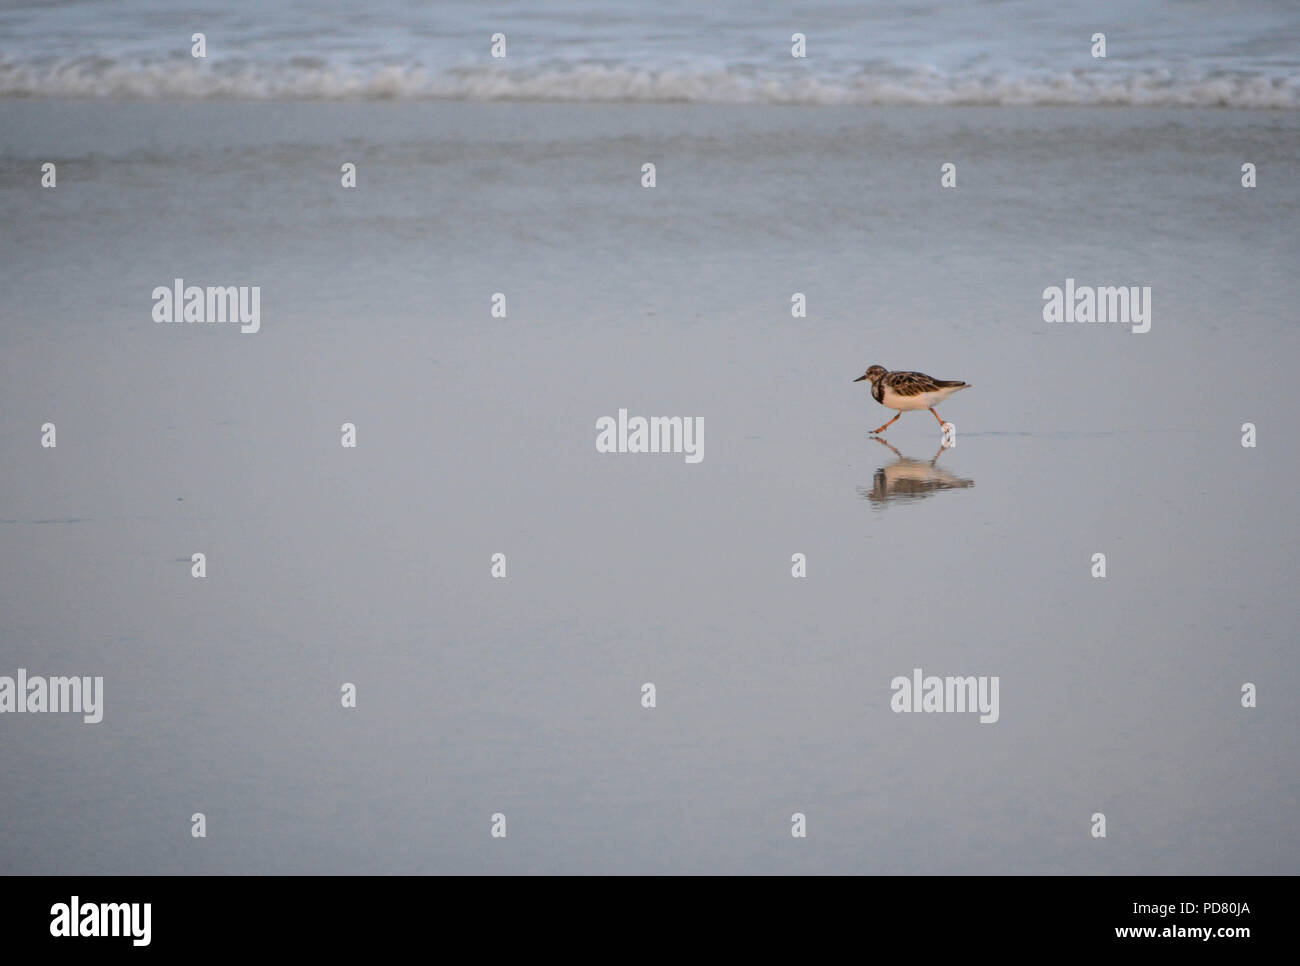 One Sandpiper Shows Reflection On Wet Sand As He Runs On East Coast Beach in Florida Near Waterline - Stock Image